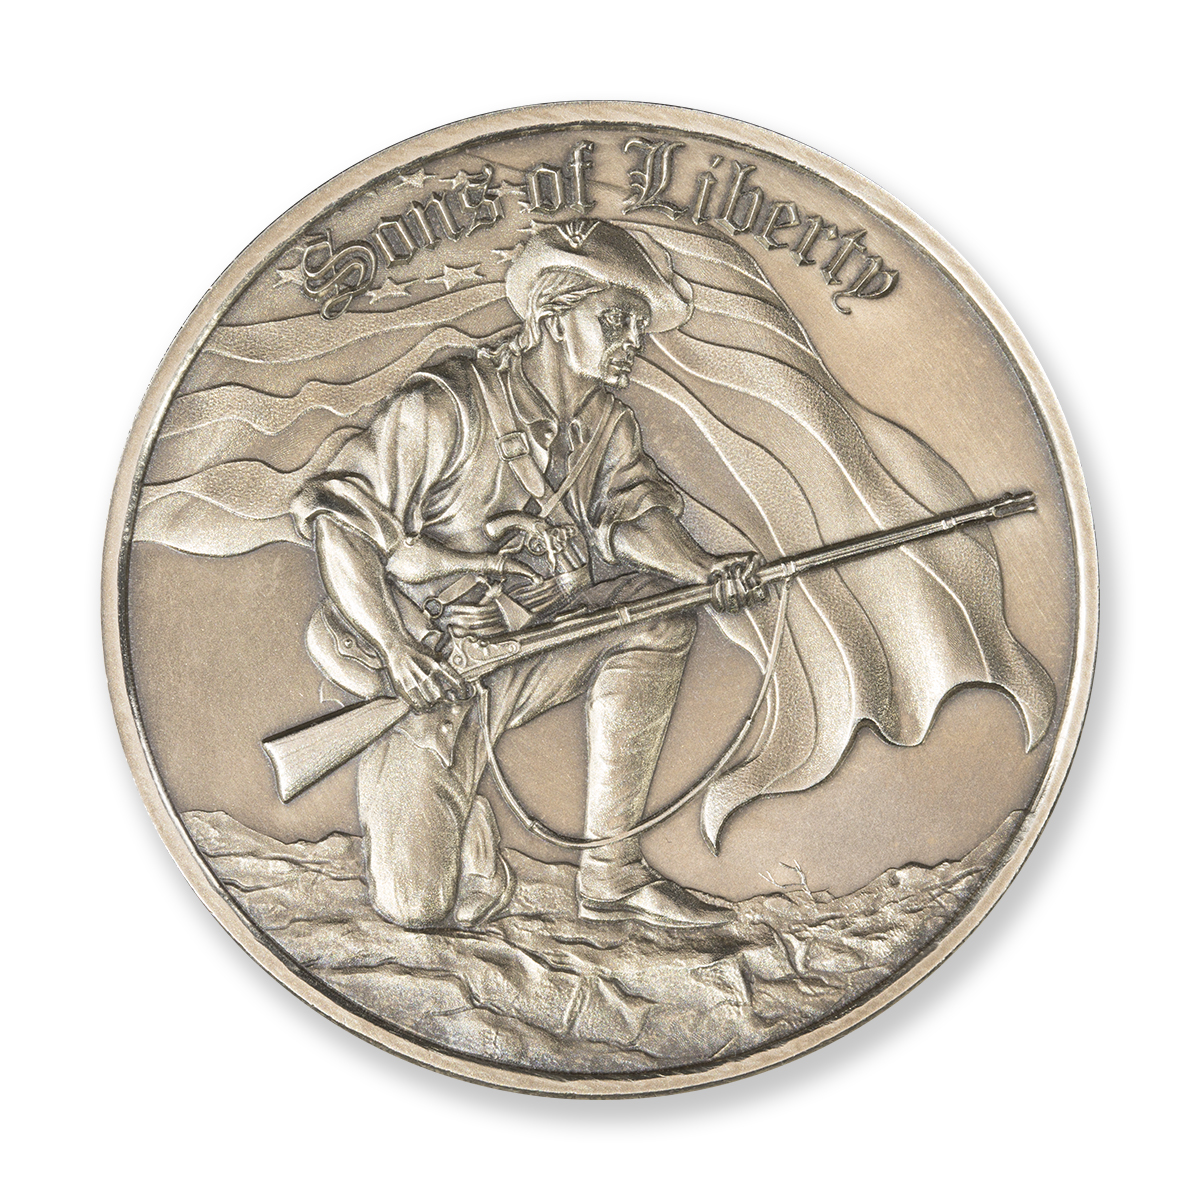 SONS OF LIBERTY, LIBERTY TREE – 2 TROY OUNCE – 50MM (ANTIQUED) (ONLY 500 MINTED)